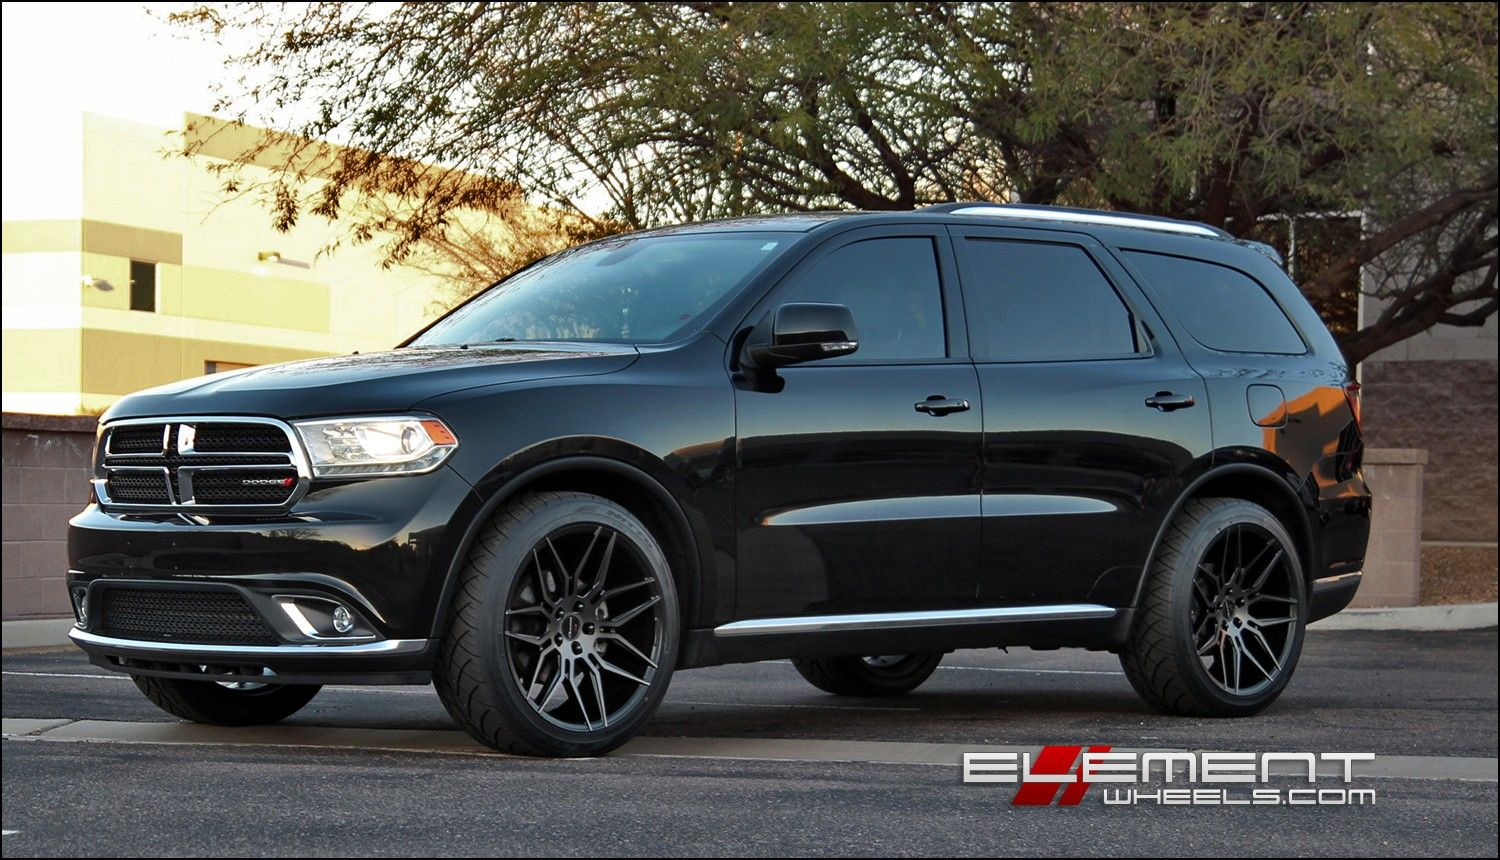 Dodge Durango Bolt Pattern Simple Design